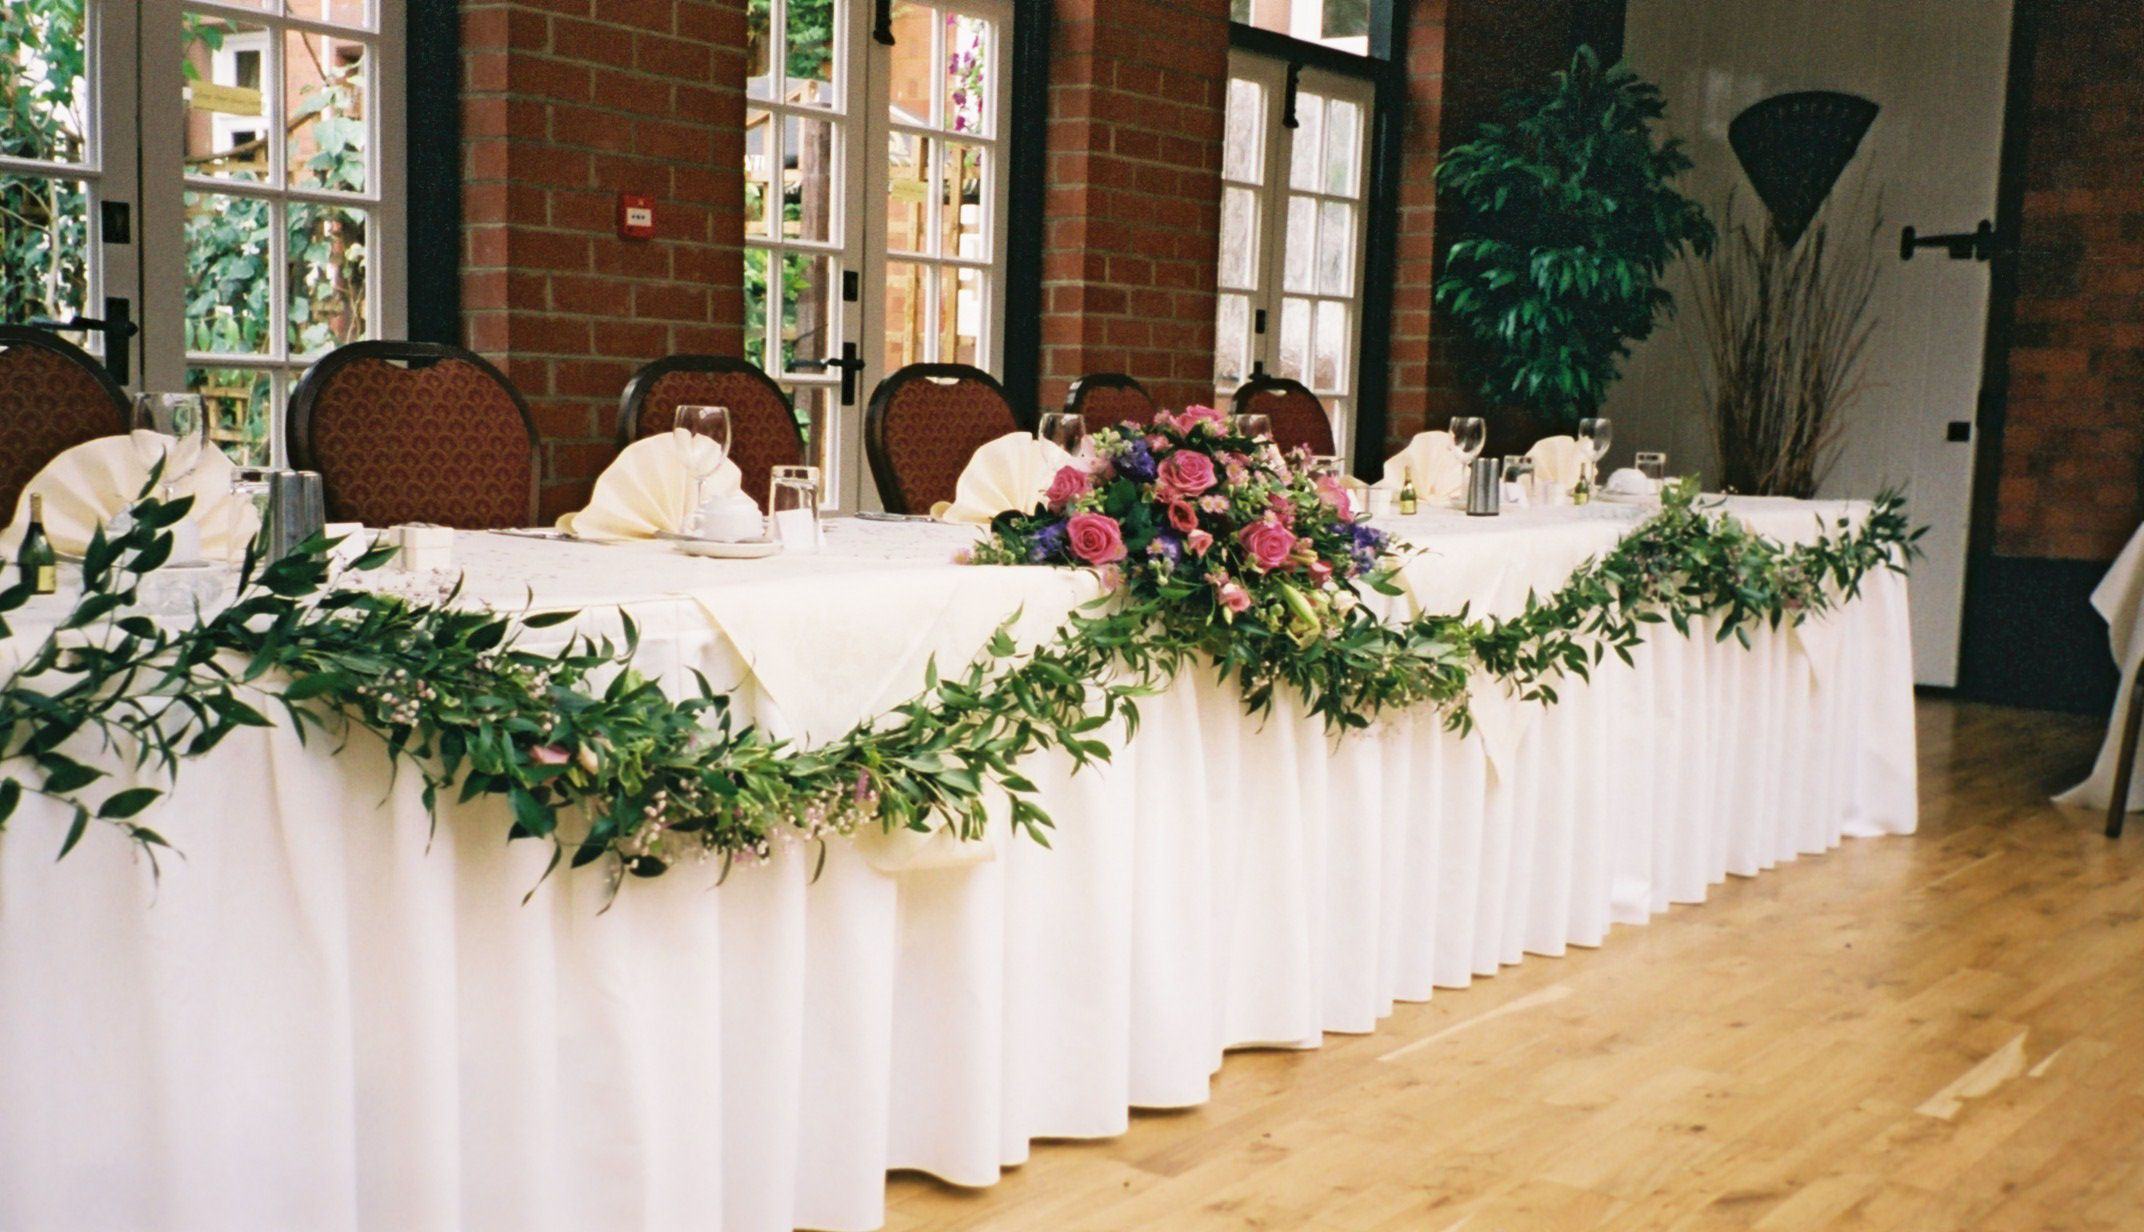 Marvelous #Wedding Reception #bridal #table #flowers Top Table Hanging Pink